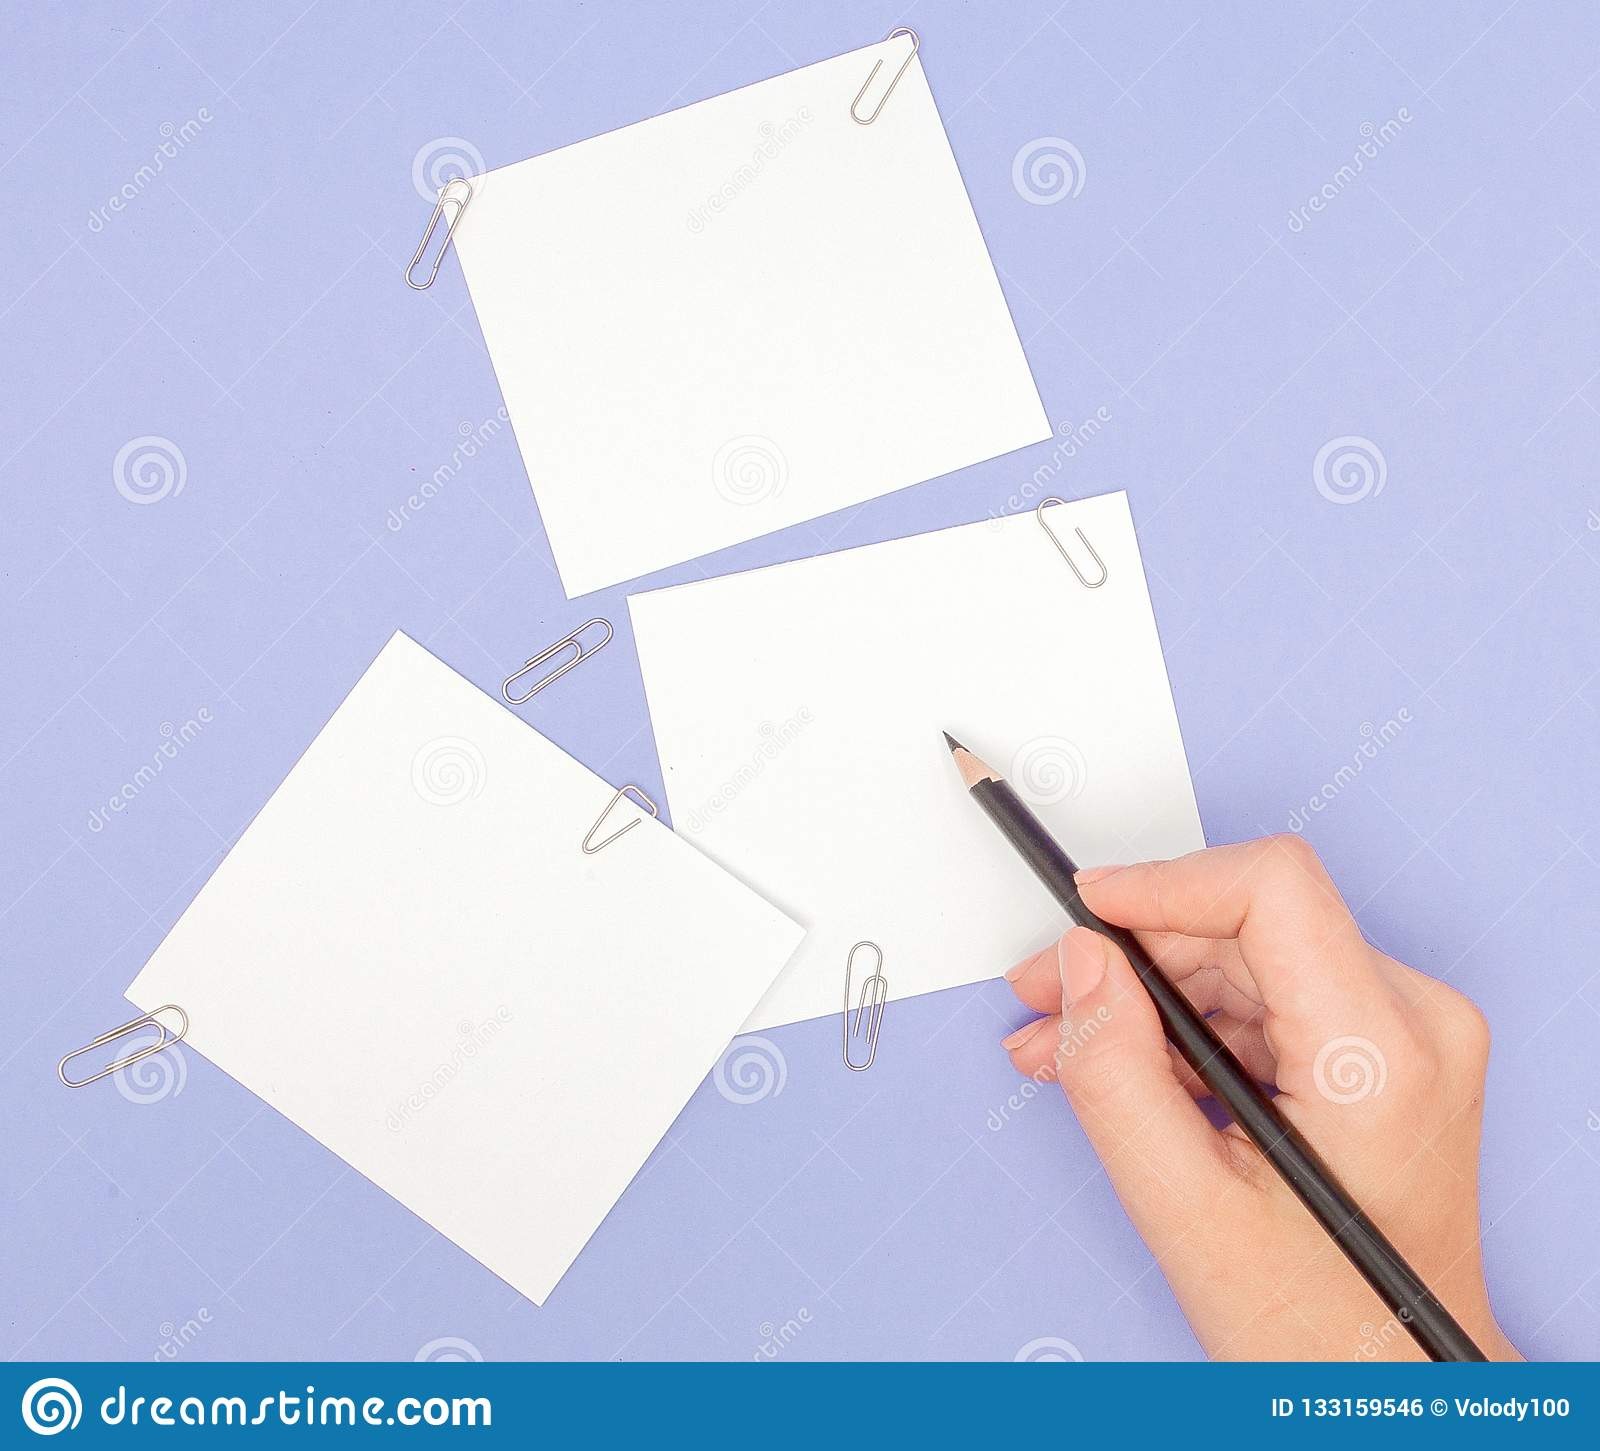 Womens hand writing on note papers on purple background. Blanks sheet of papers and color pencils on violet background